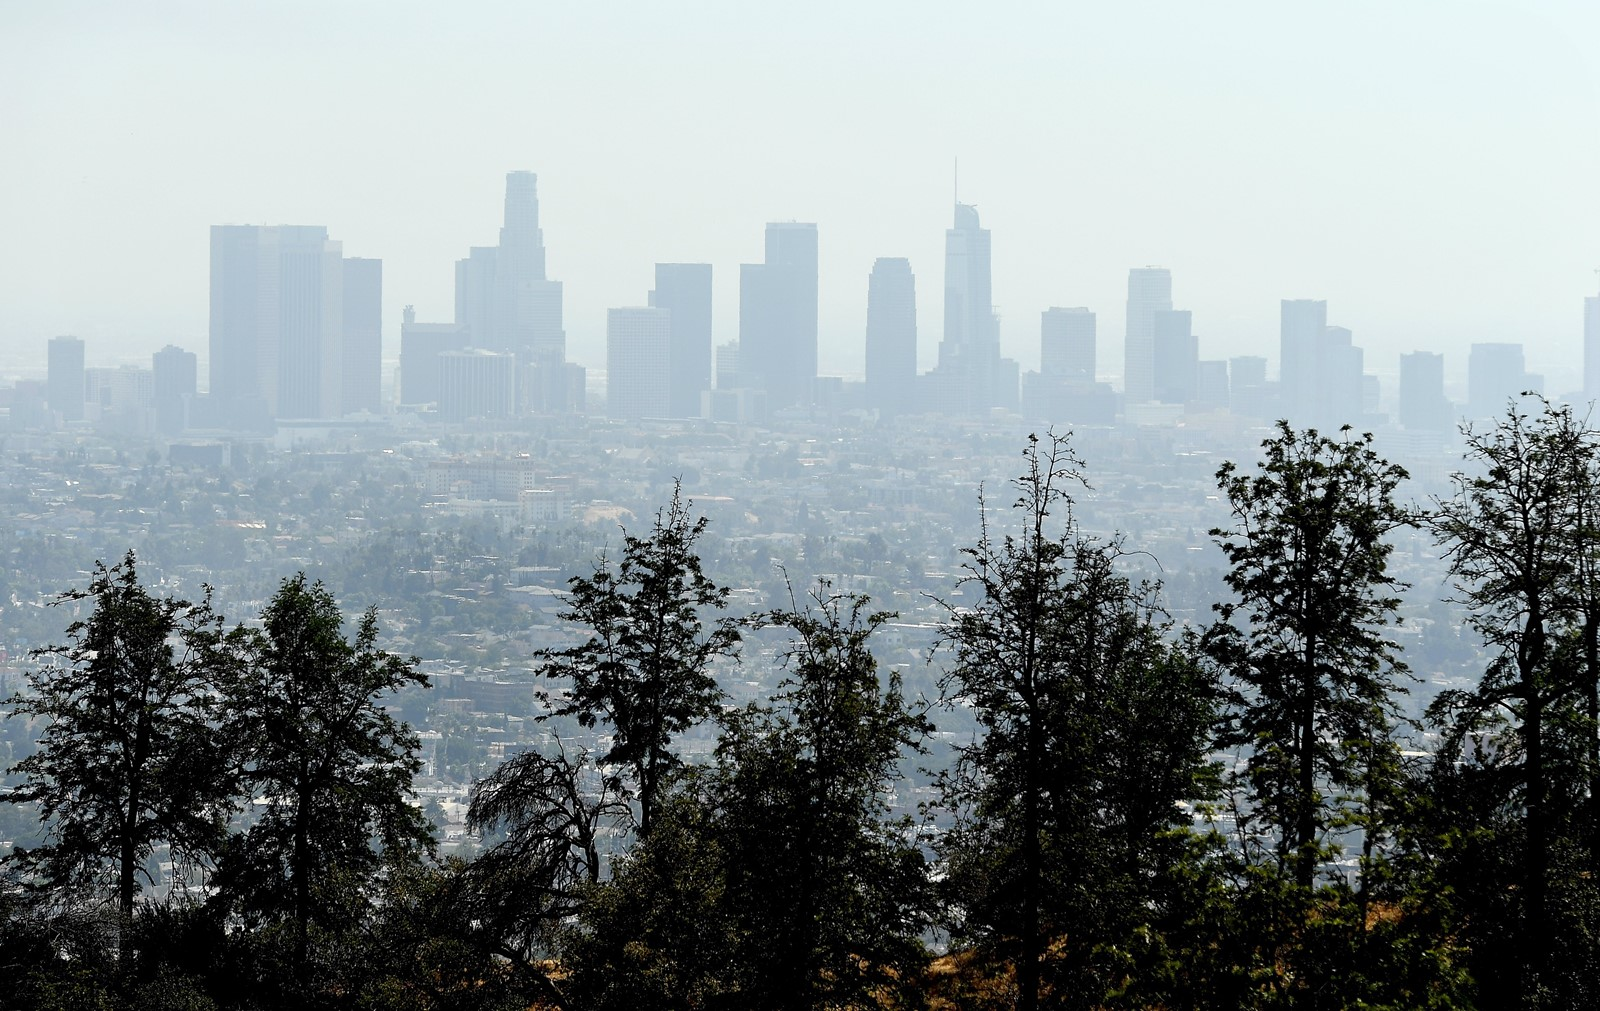 Unhealthful summer haze is not unusual in Southern California, but this year's persistence is troubling. — Photograph: Wally Skalij/Los Angeles Times.